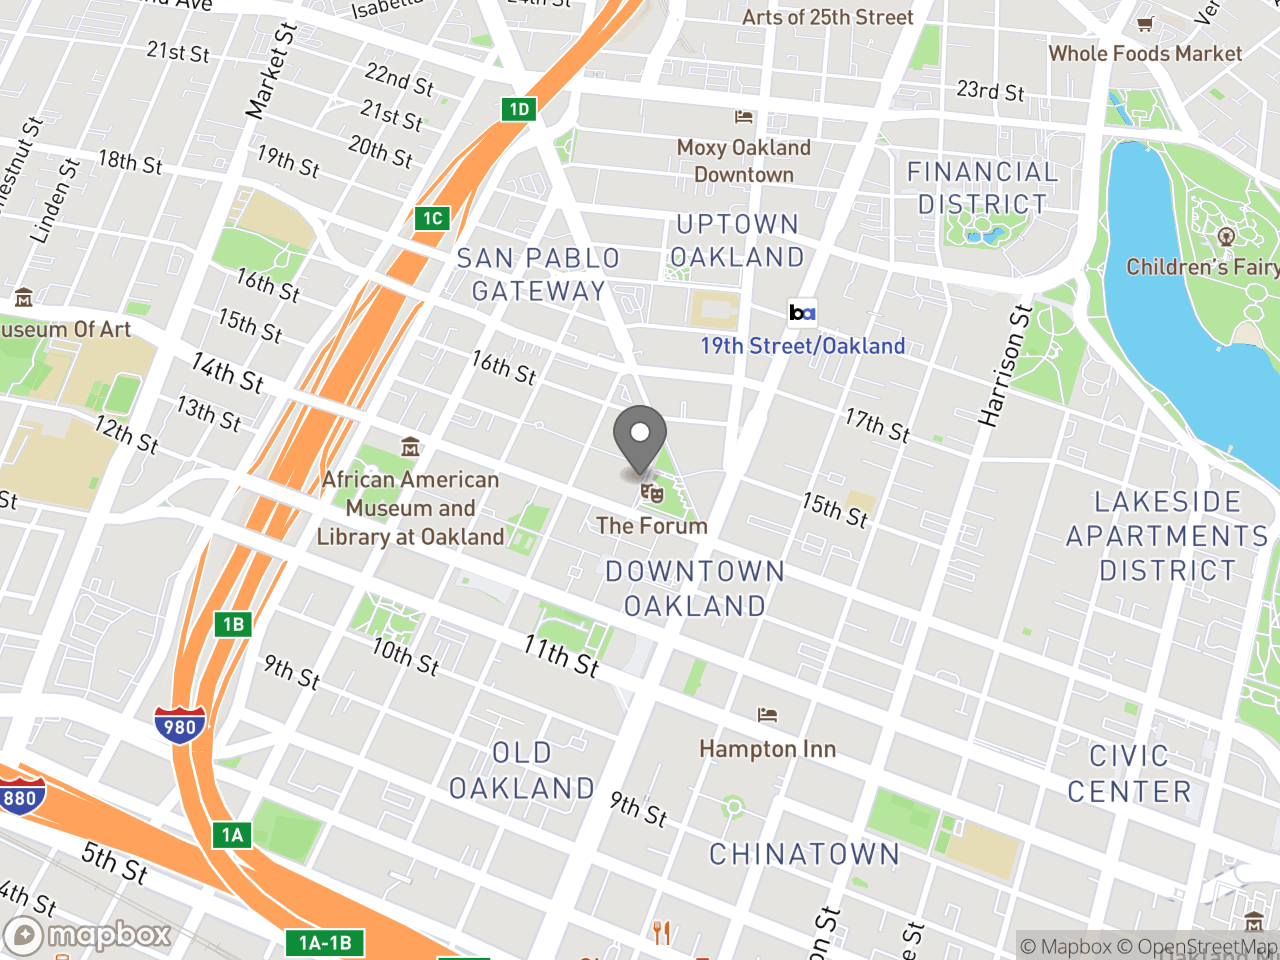 Map location for September 26, 2018 Design Review Committee Meeting, located at 1 Frank H. Ogawa Plaza in Oakland, CA 94612